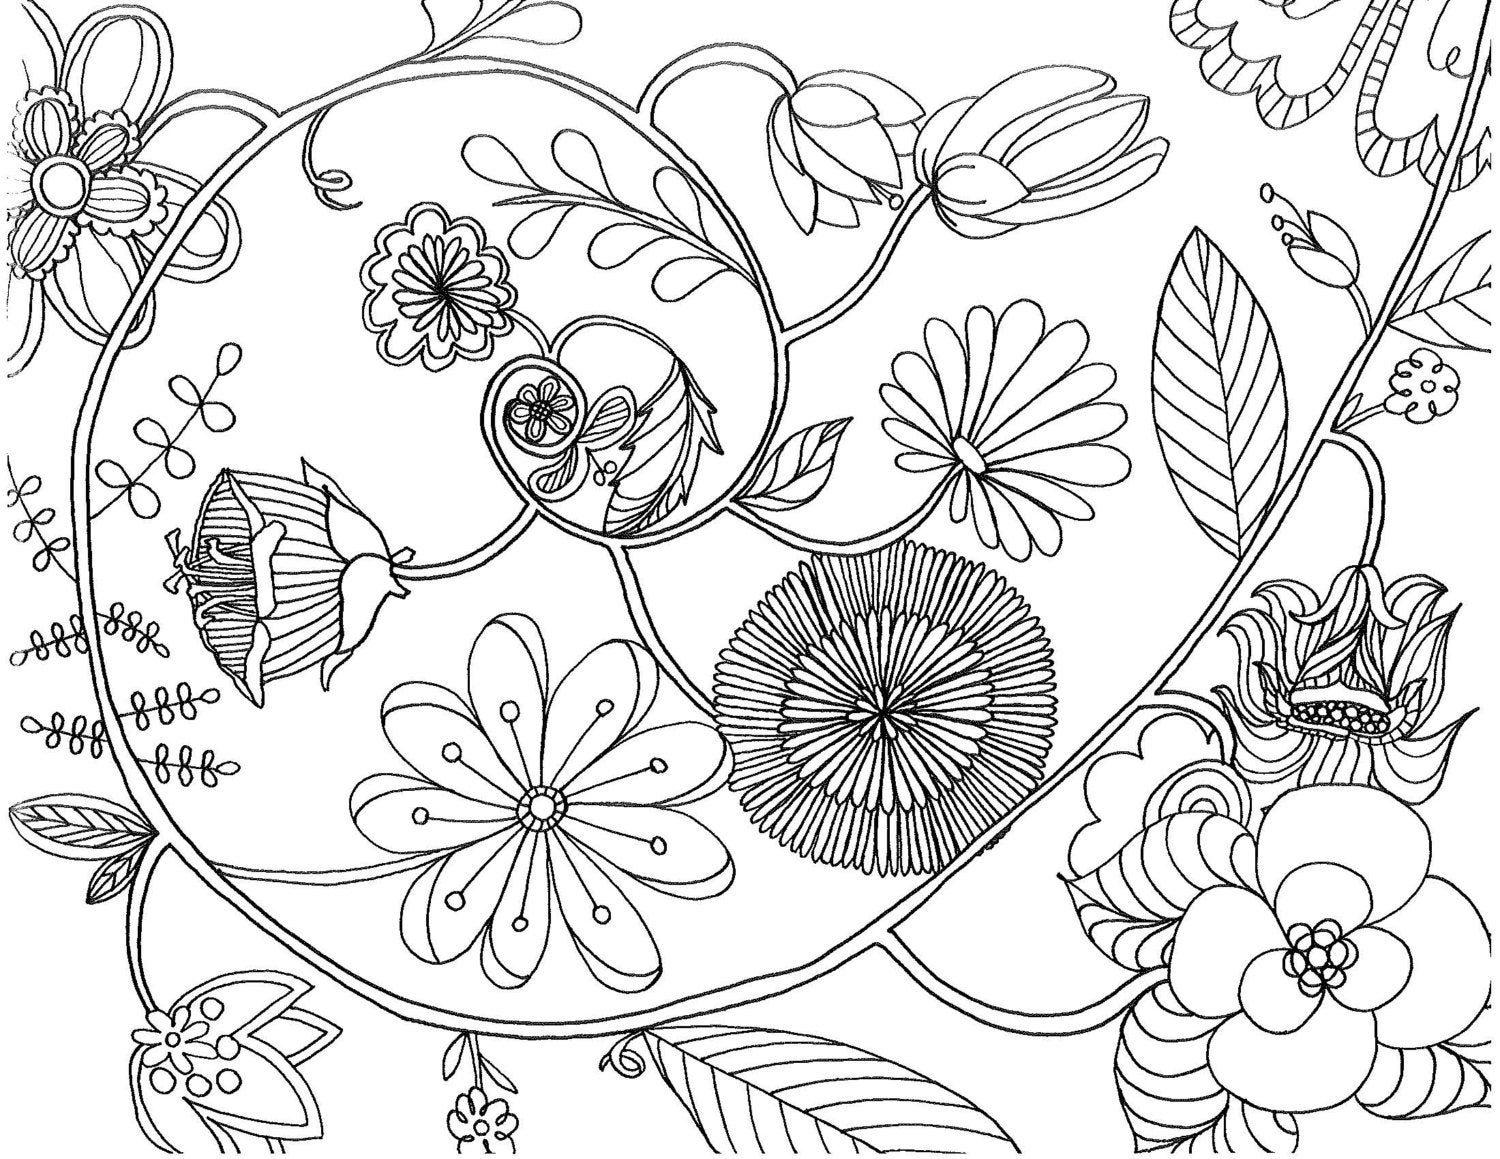 spiral coloring pages to print | floral spiral coloring page